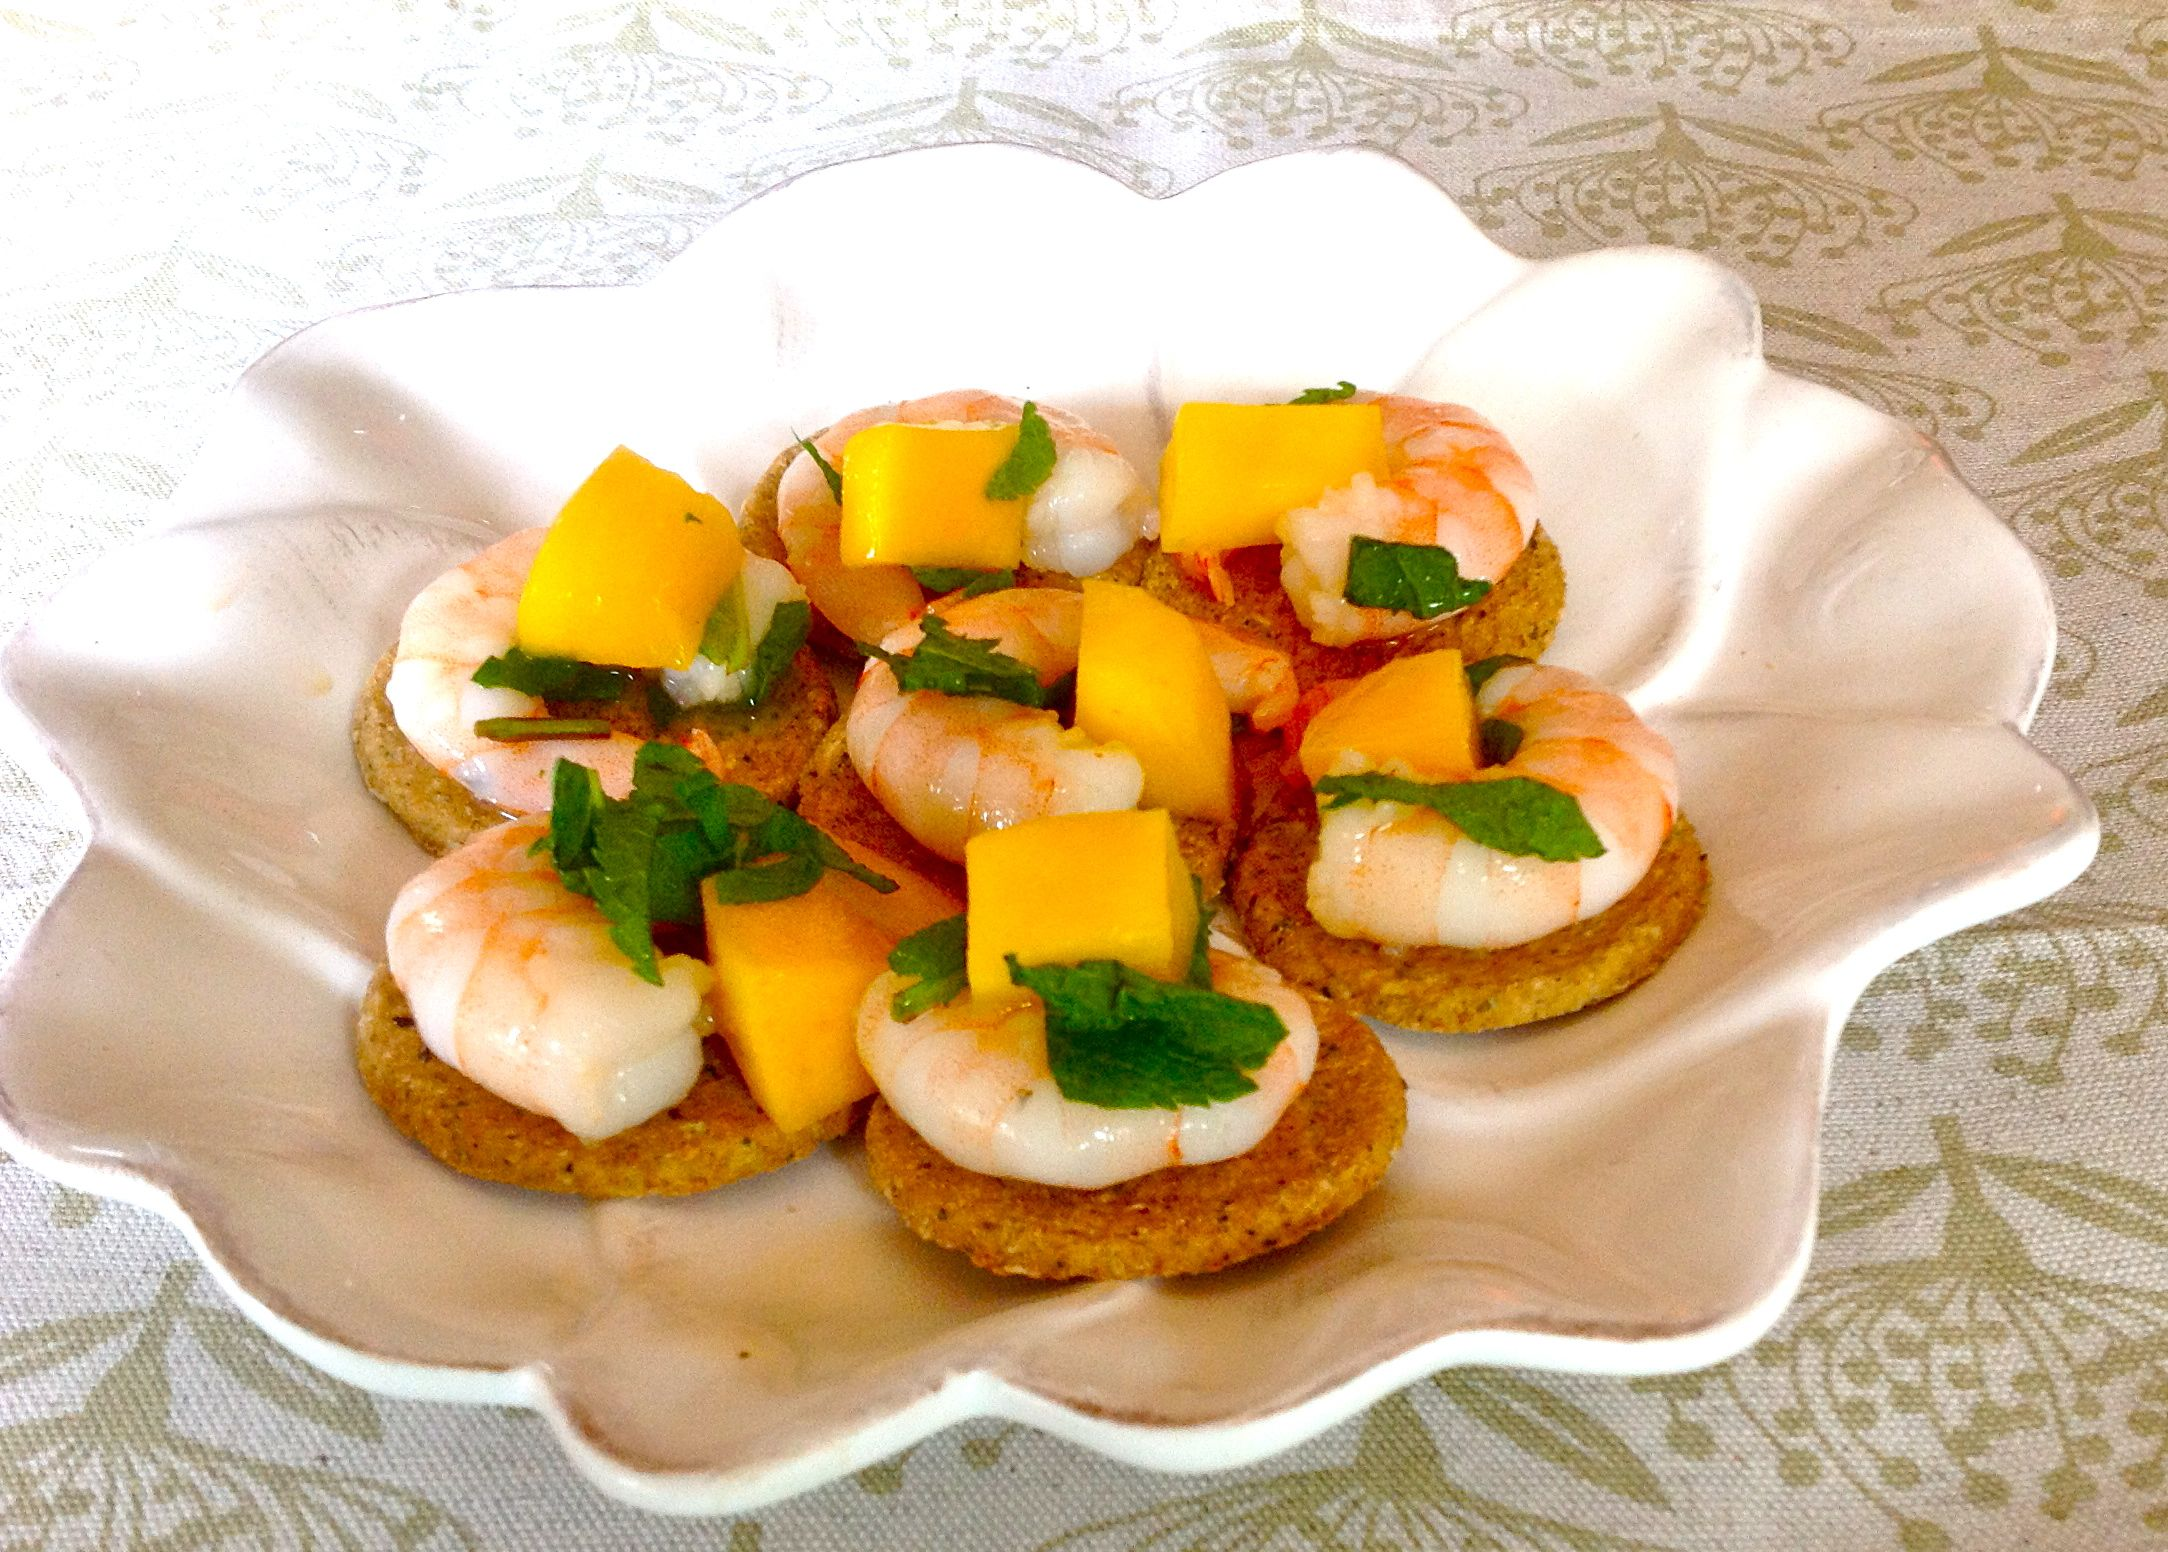 Recipes really easy ideas for canapes eating covent garden for Simple canape appetizer